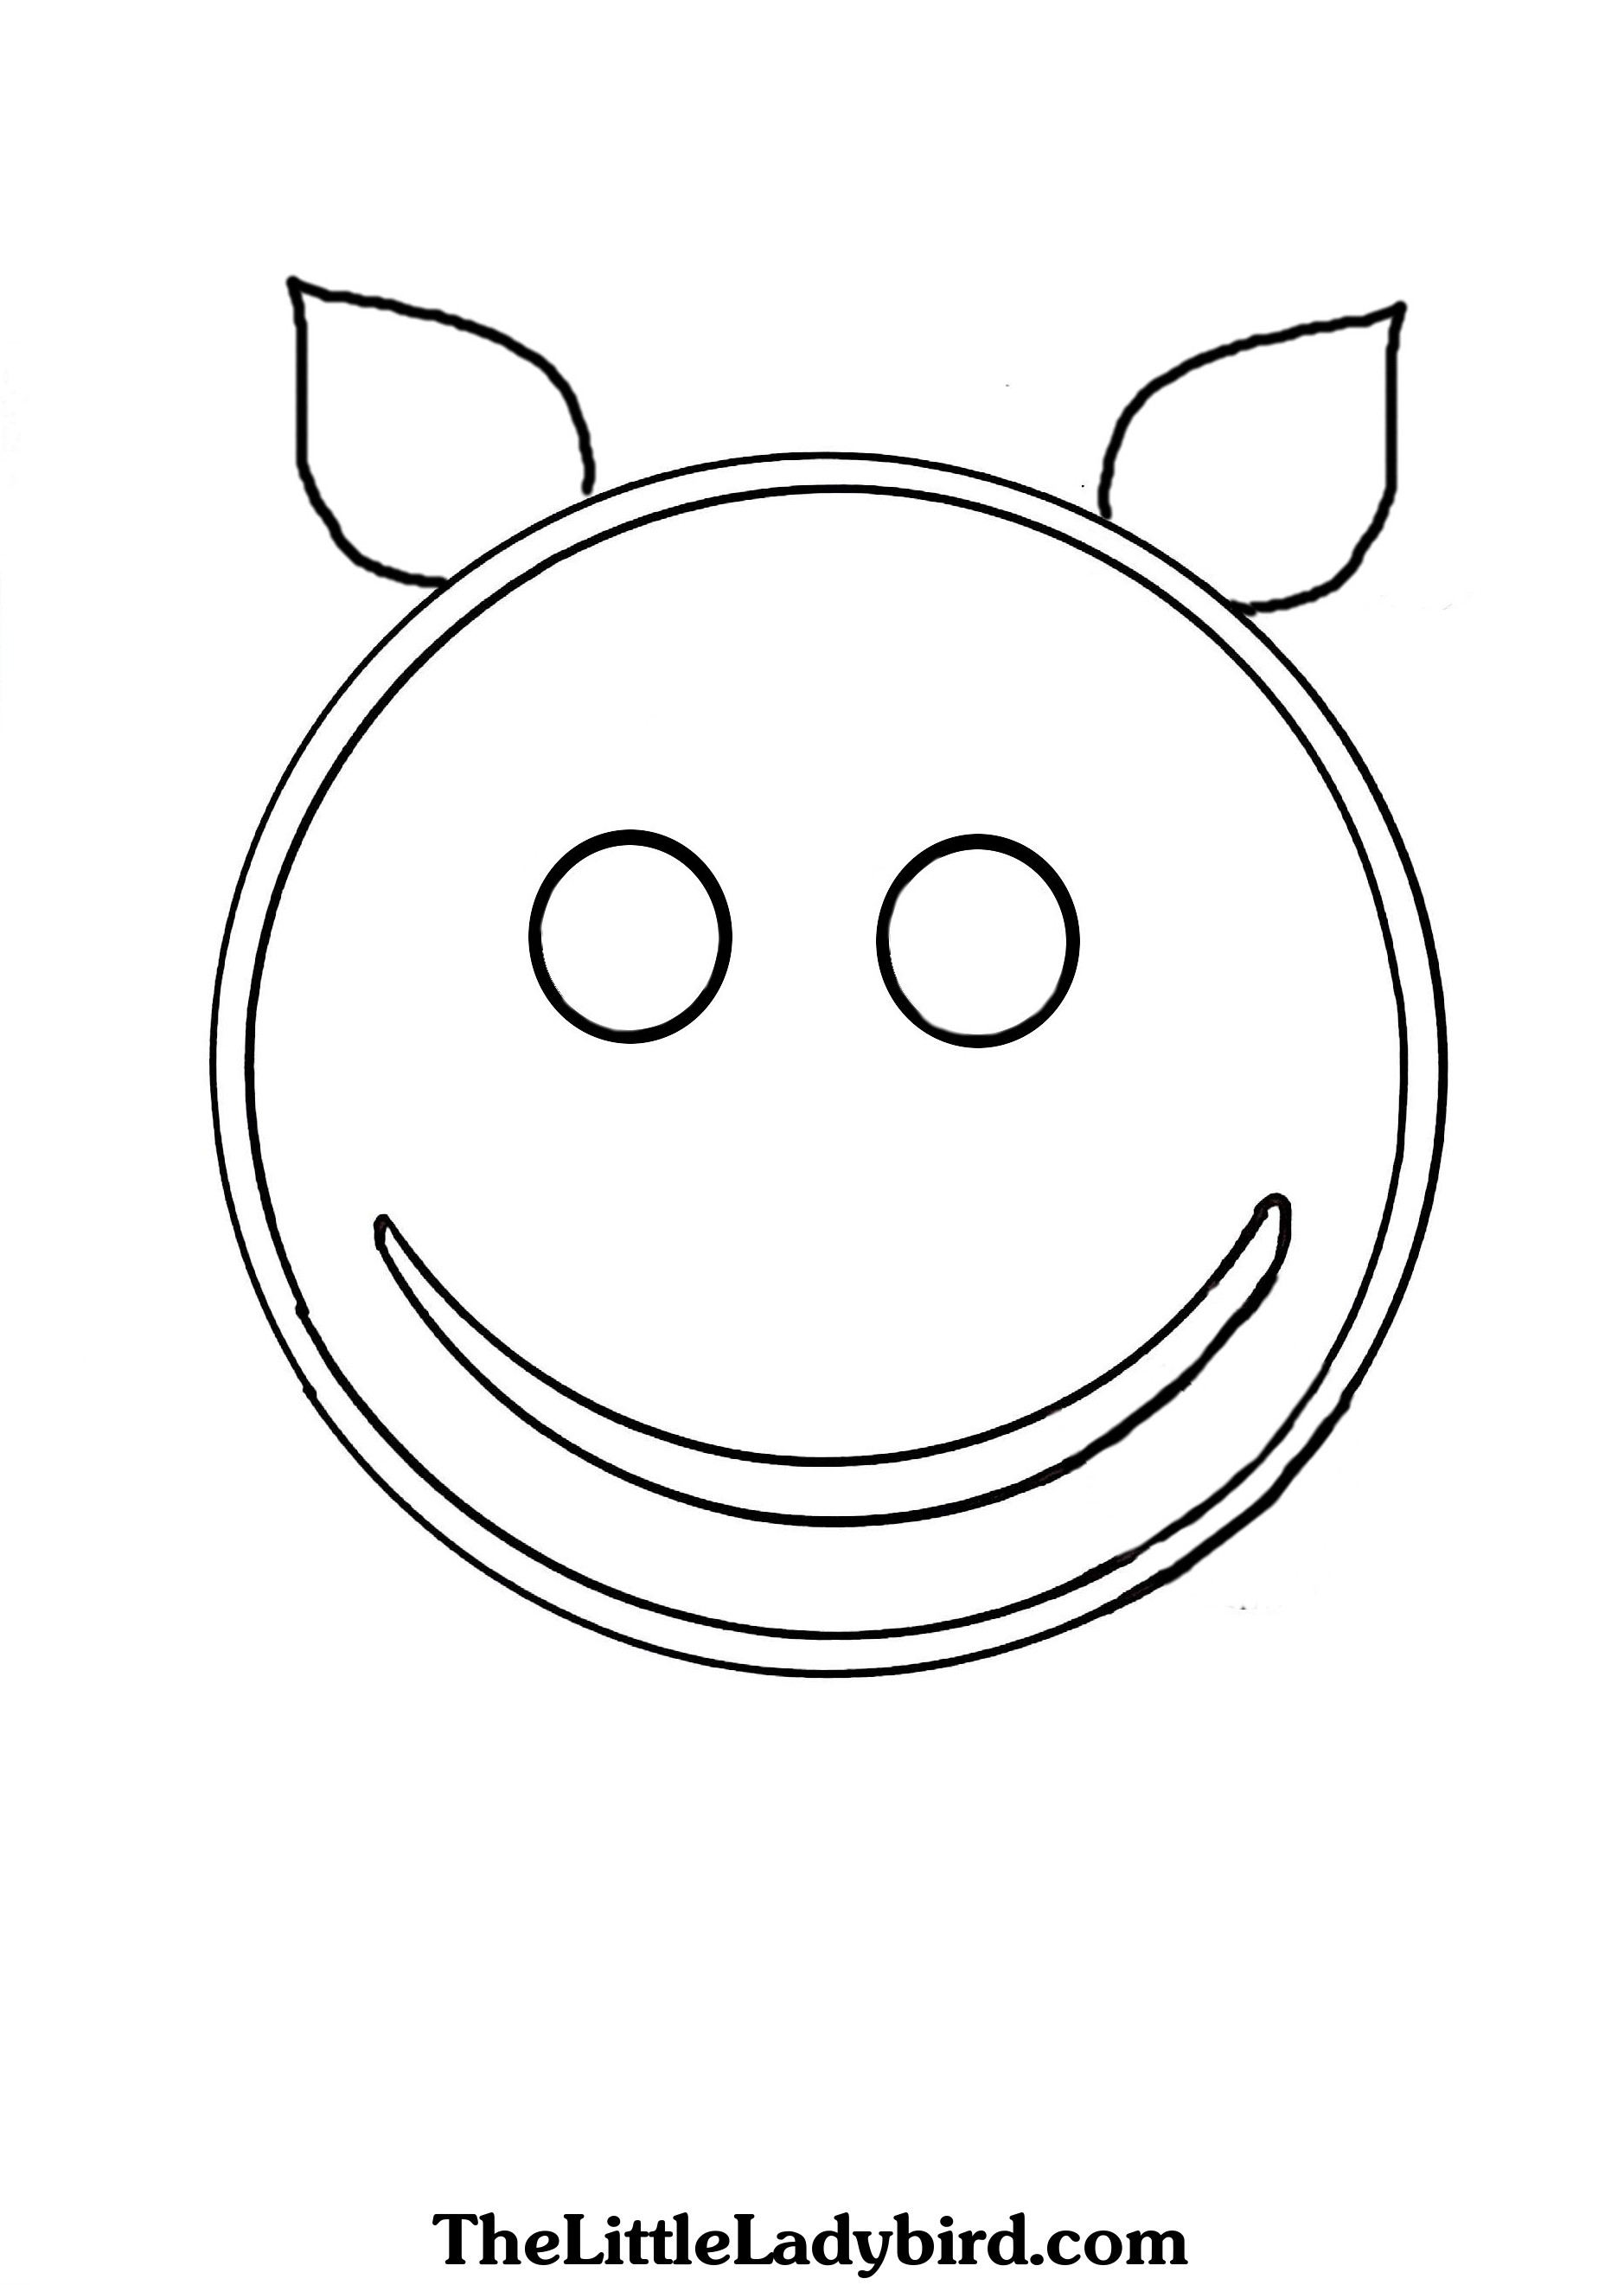 Emoji Poop Coloring Pages At Getcolorings